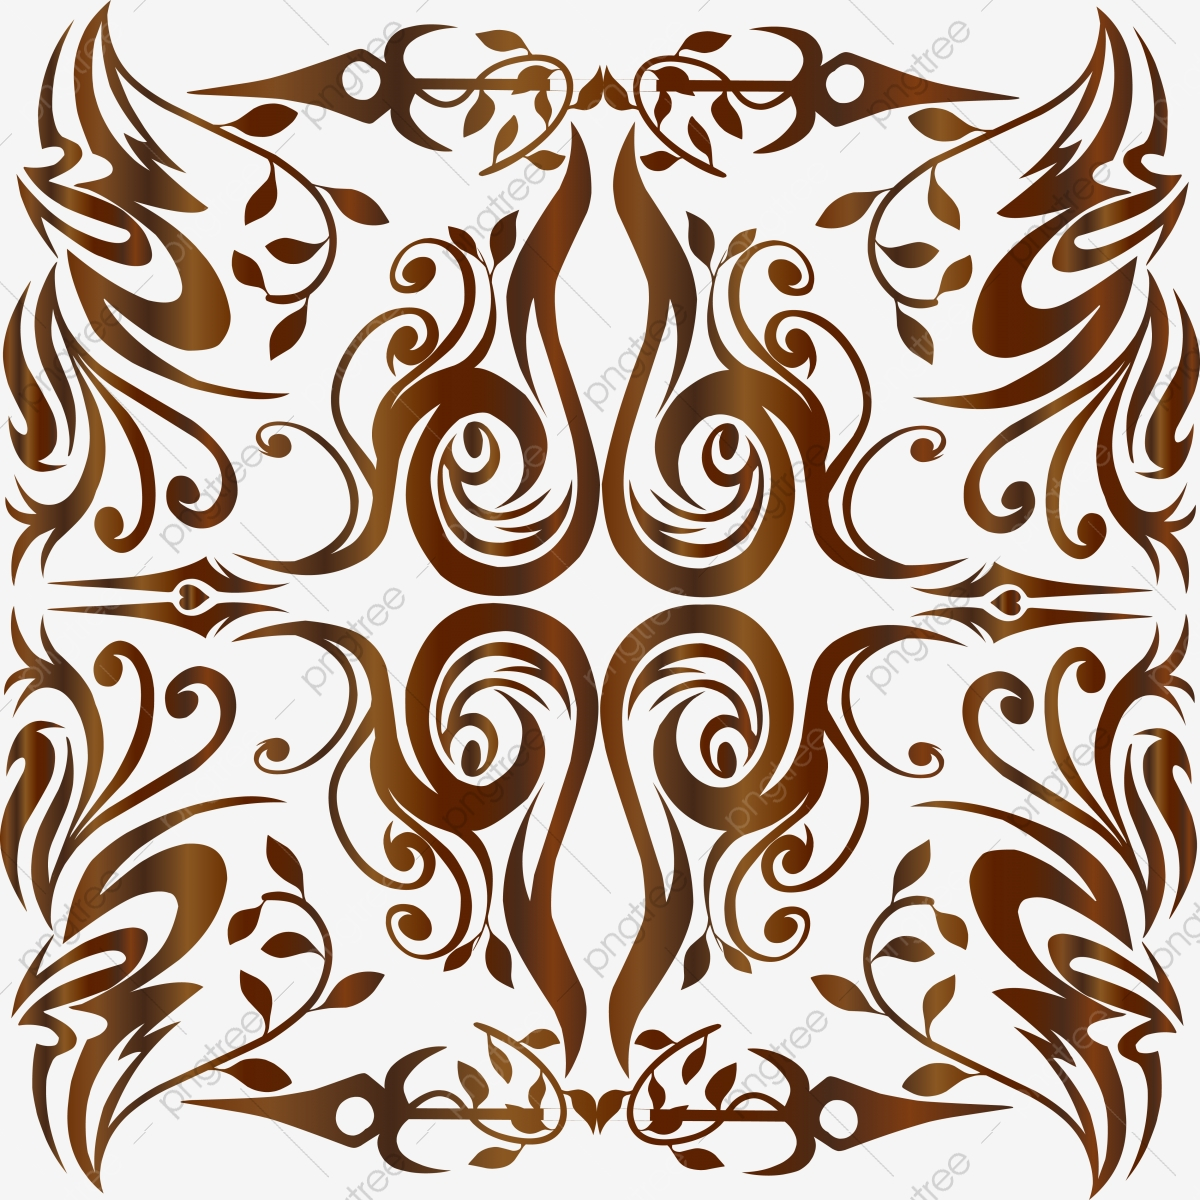 Traditional Batik Motifs From Indonesia, Embroidery, Moroccan ...